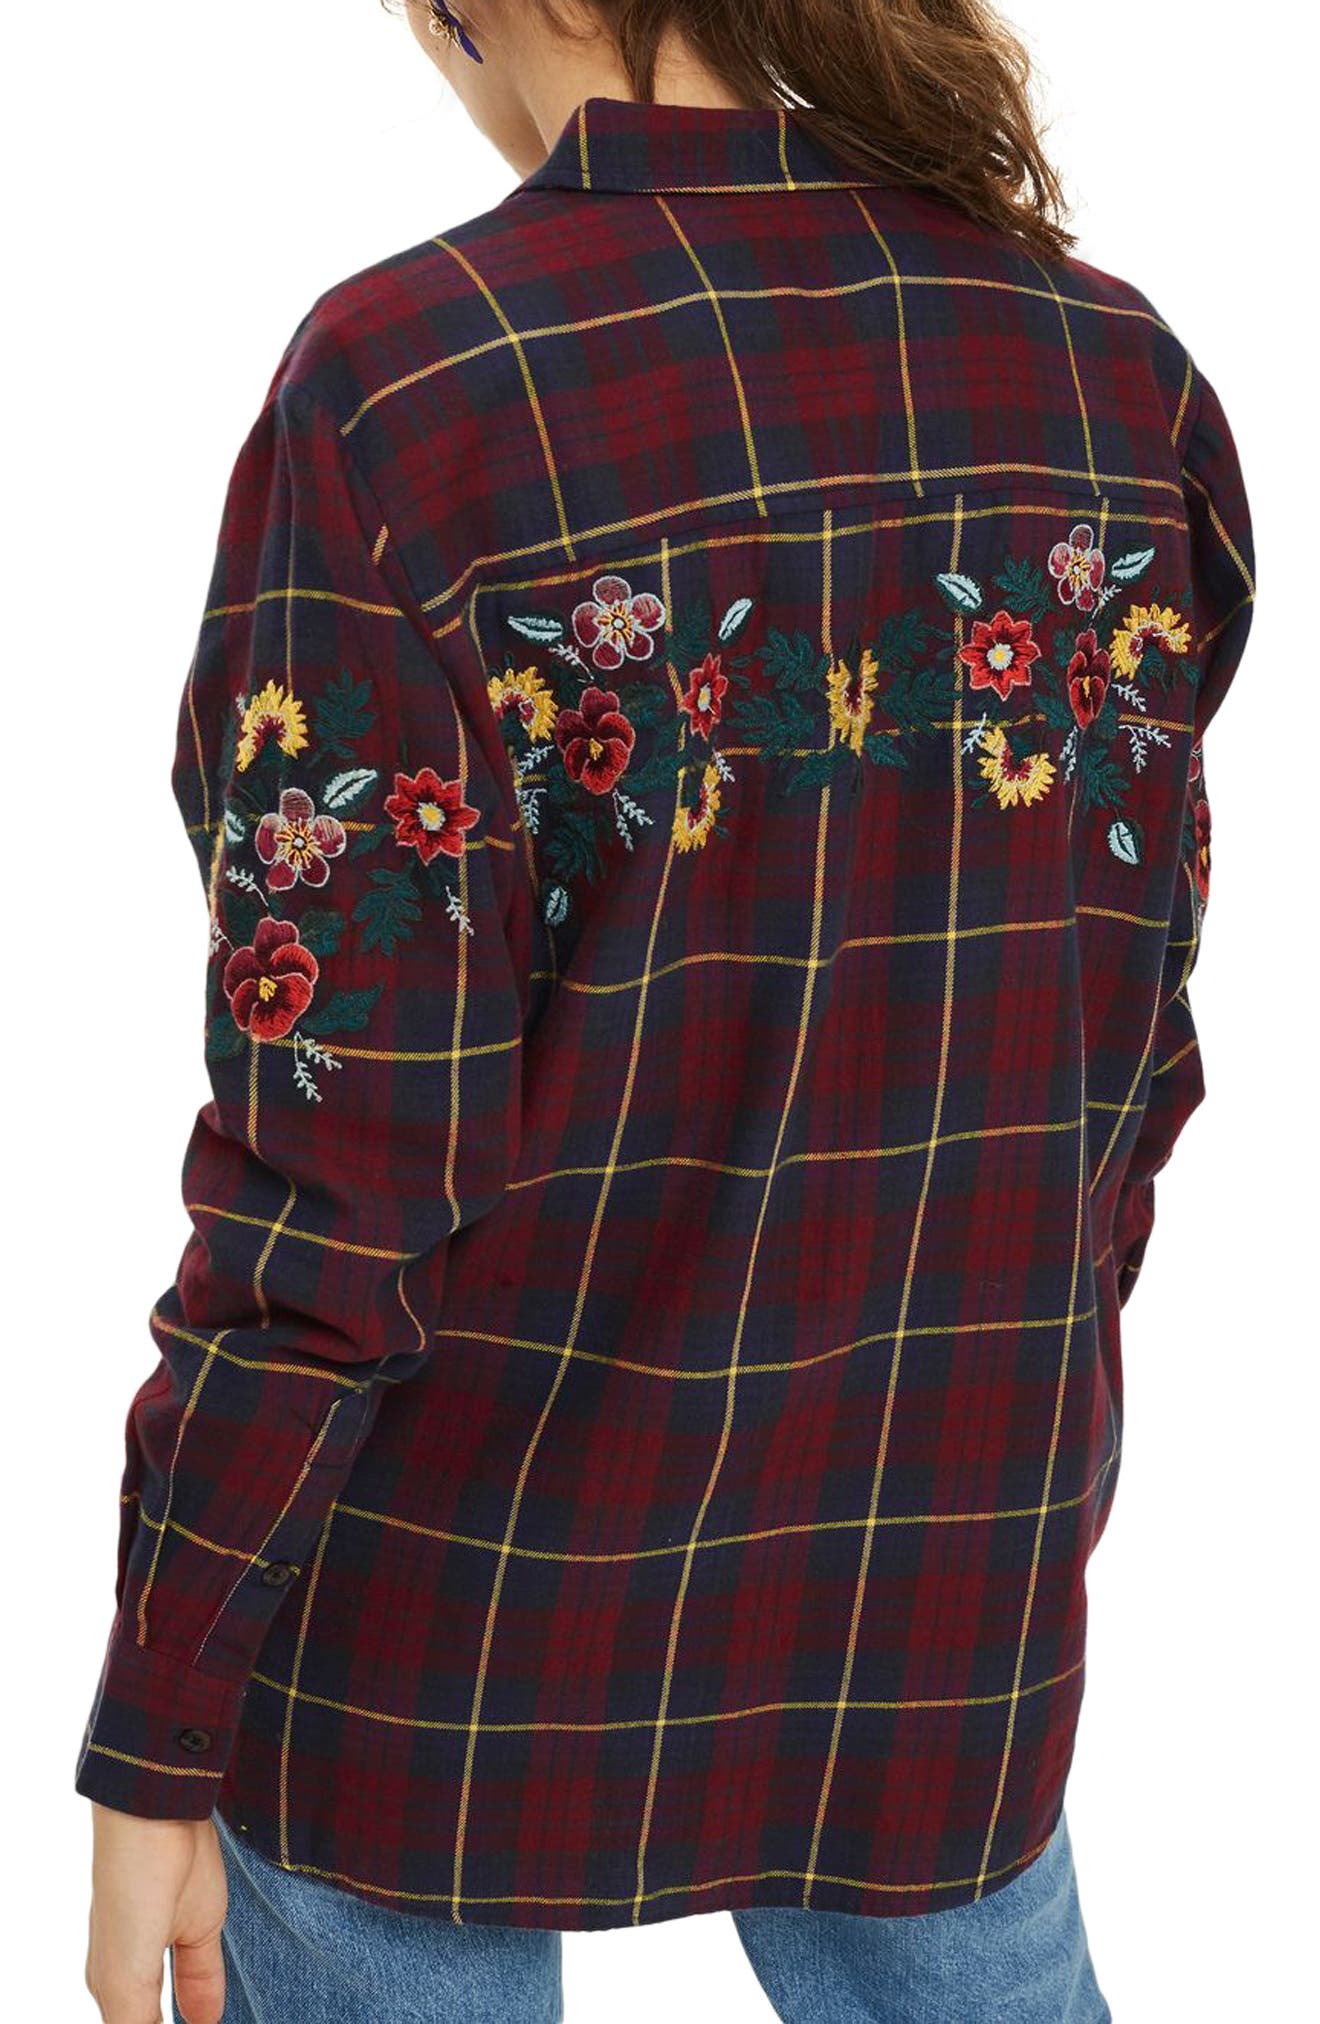 Floral Embroidered Check Shirt,                             Alternate thumbnail 2, color,                             601